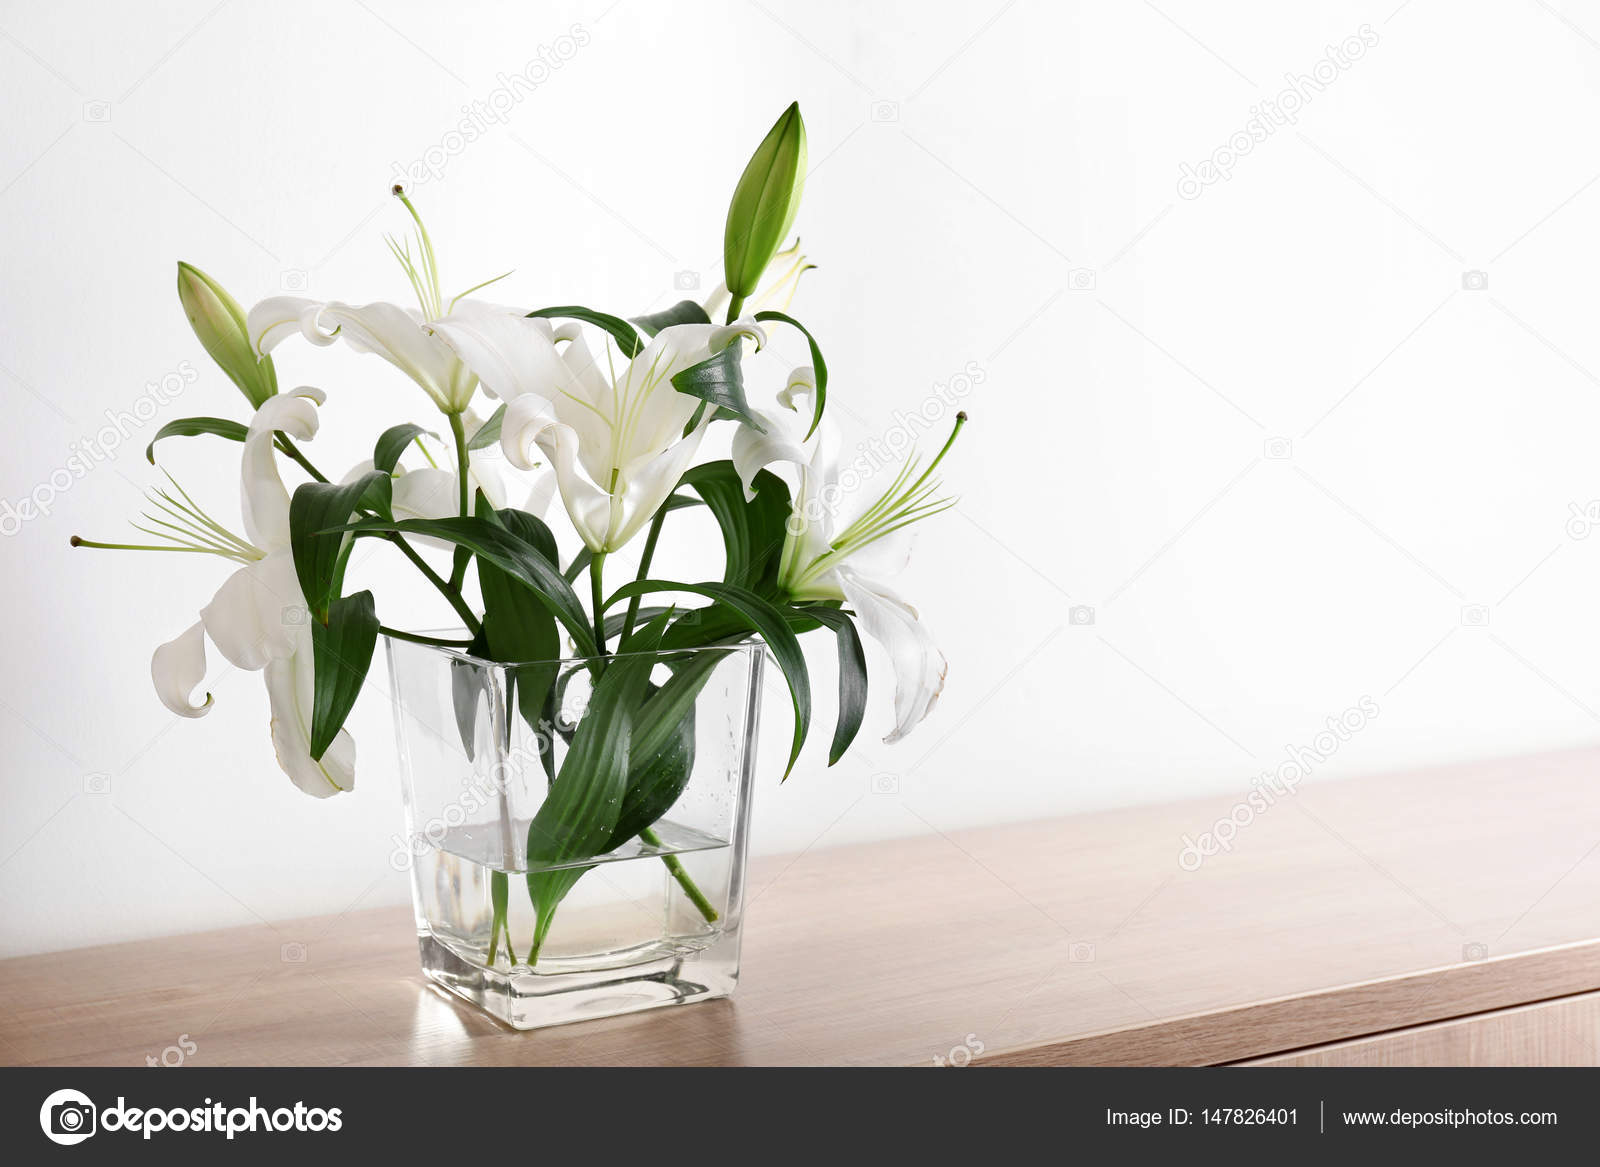 Beautiful white lilies in vase stock photo belchonock 147826401 beautiful white lilies in vase on table photo by belchonock reviewsmspy